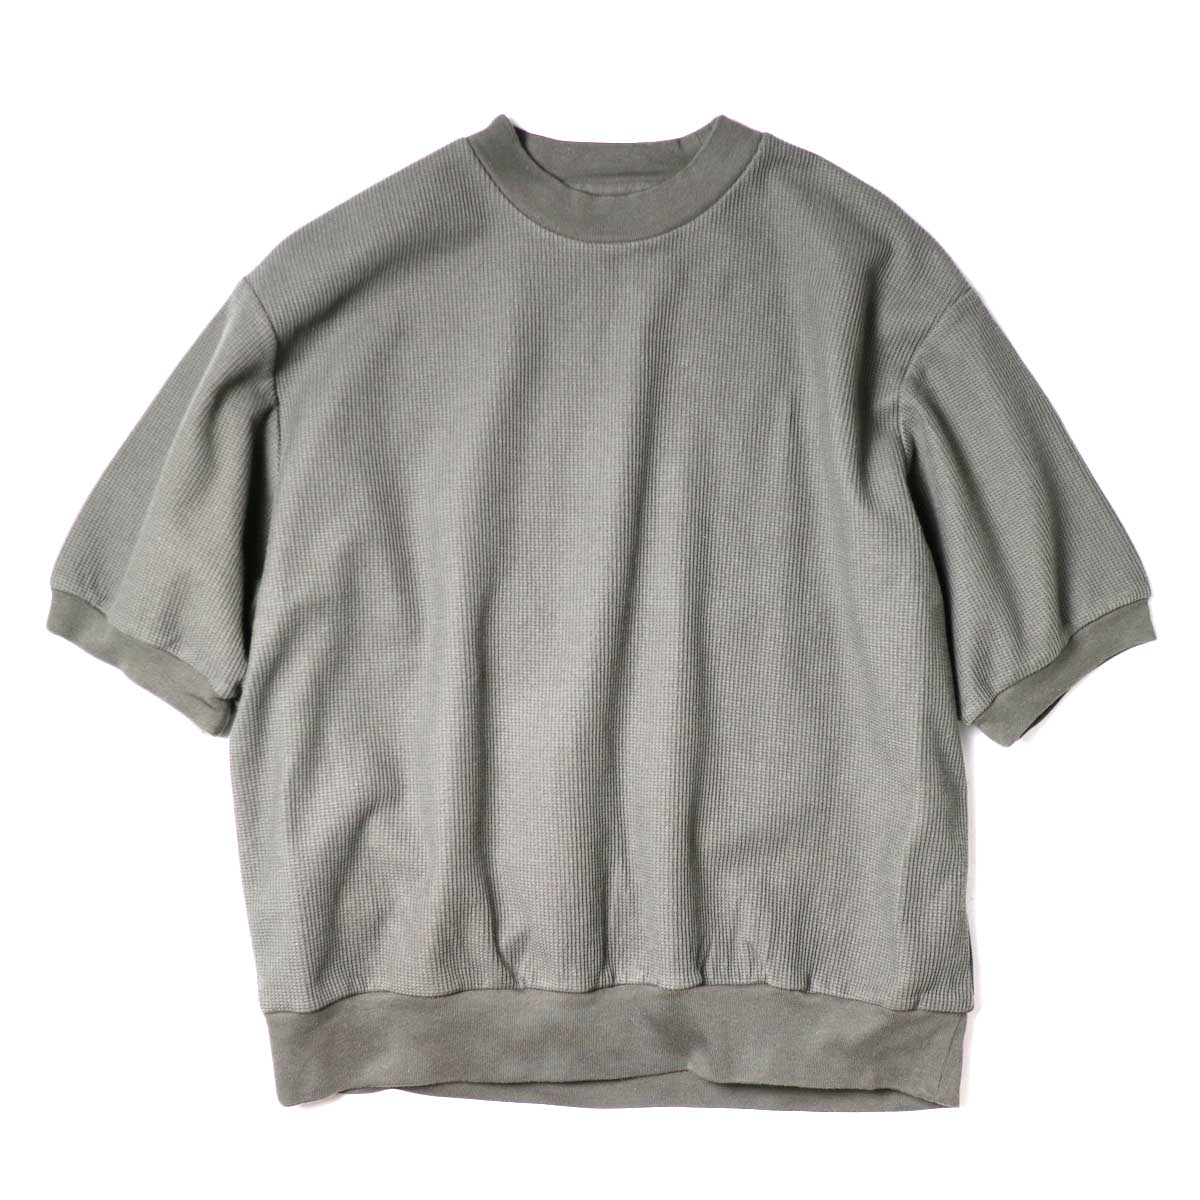 blurhms / Rough&Smooth Thermal Pullover S/S (Khaki Grey)